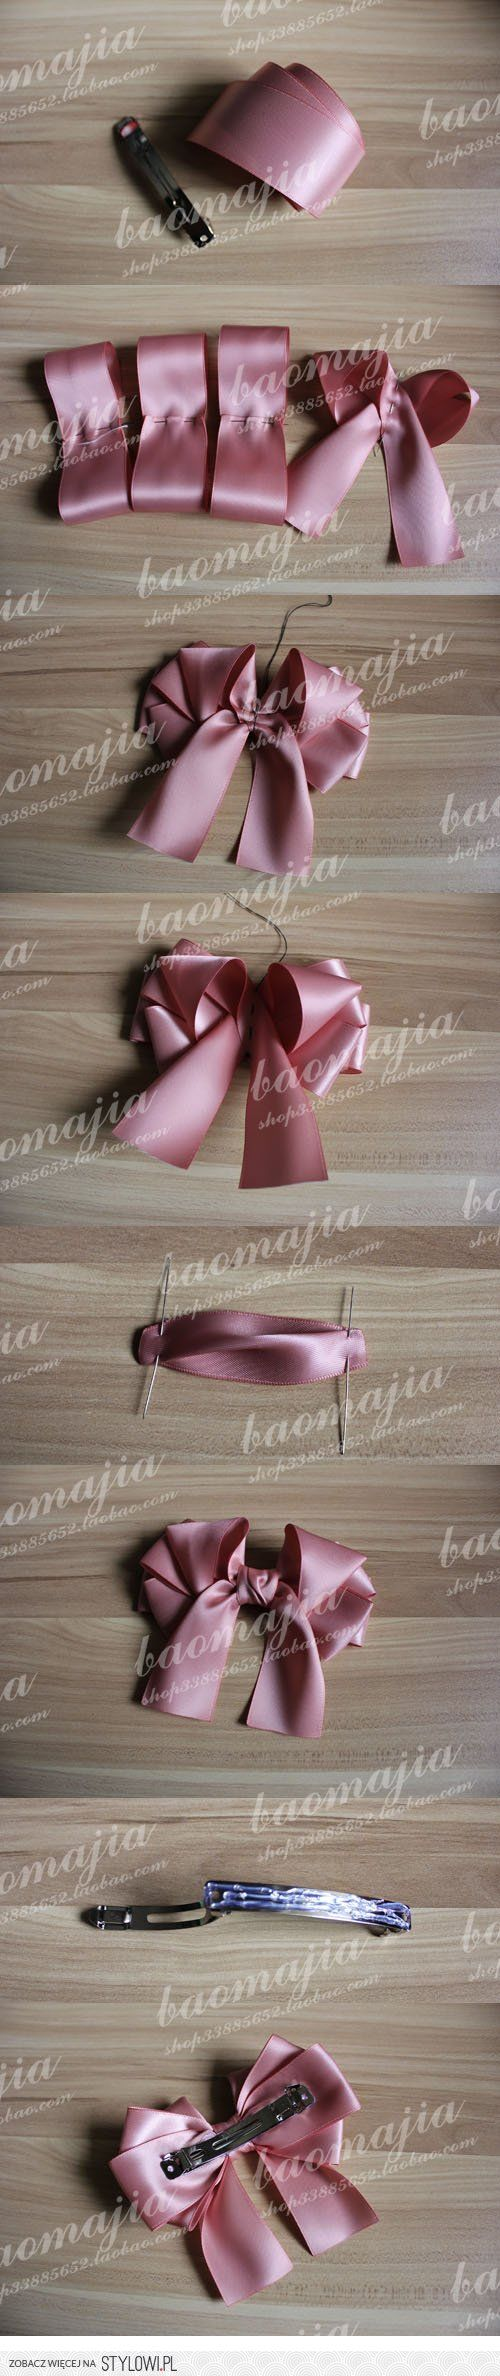 cute bow for hair clips, etc.